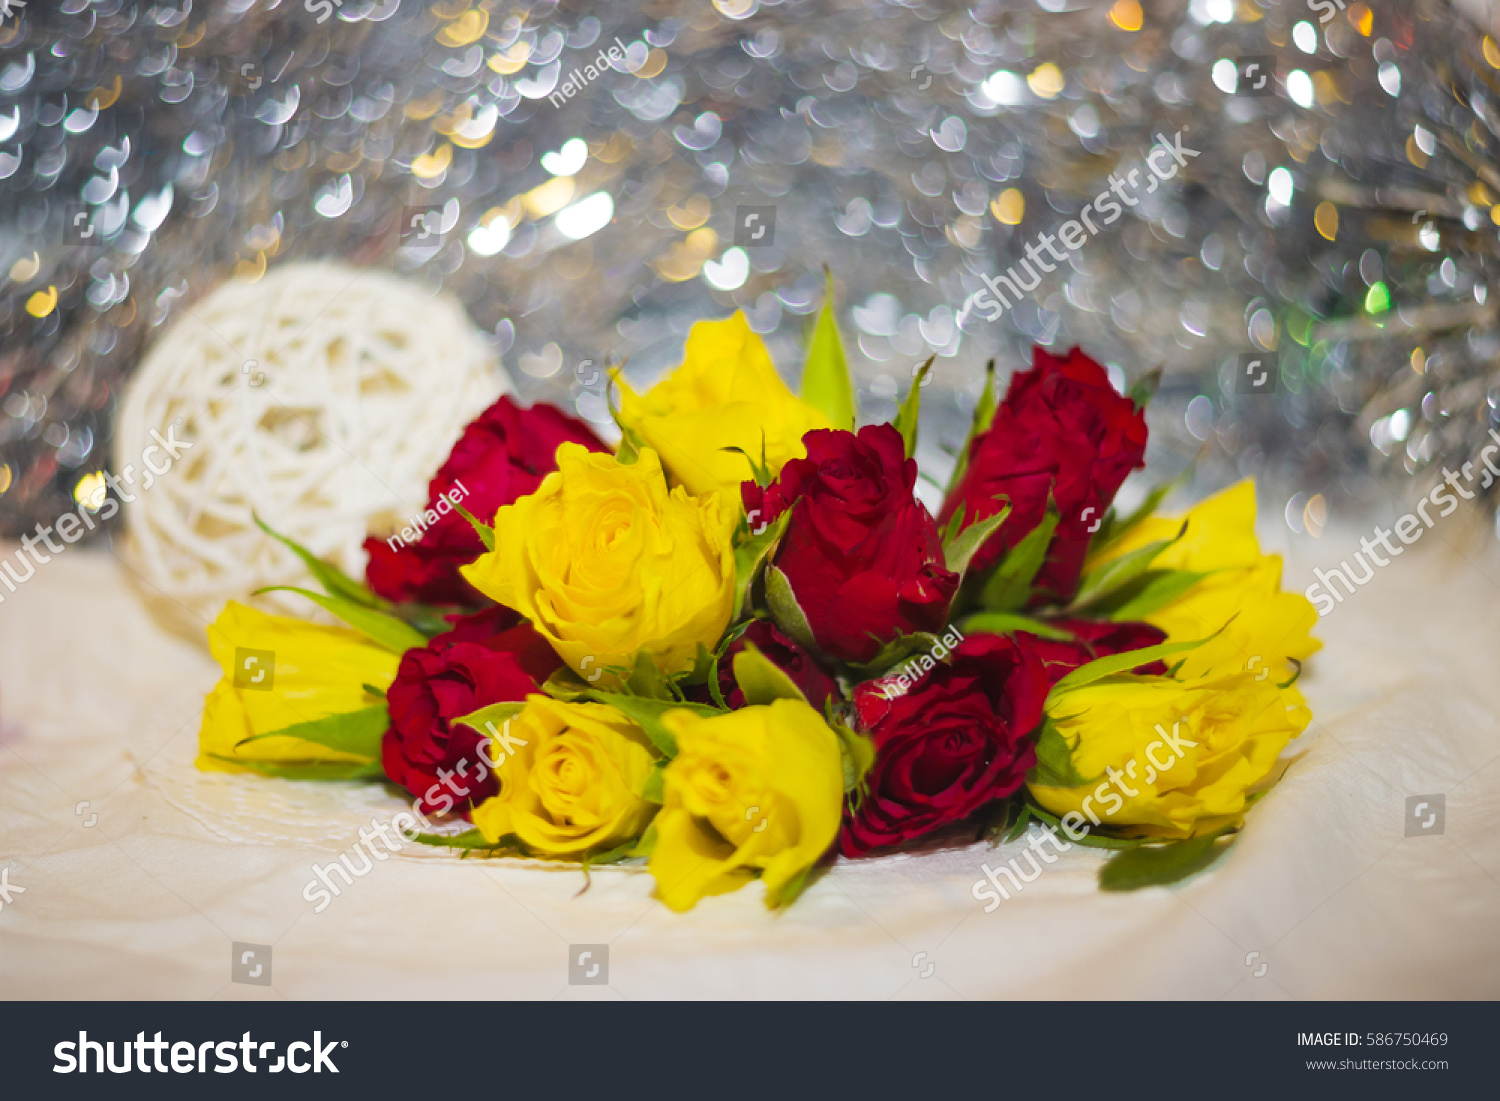 Red yellow small roses buds bokeh stock photo download now red and yellow small roses buds with bokeh and ball of twigs on the background shallow mightylinksfo